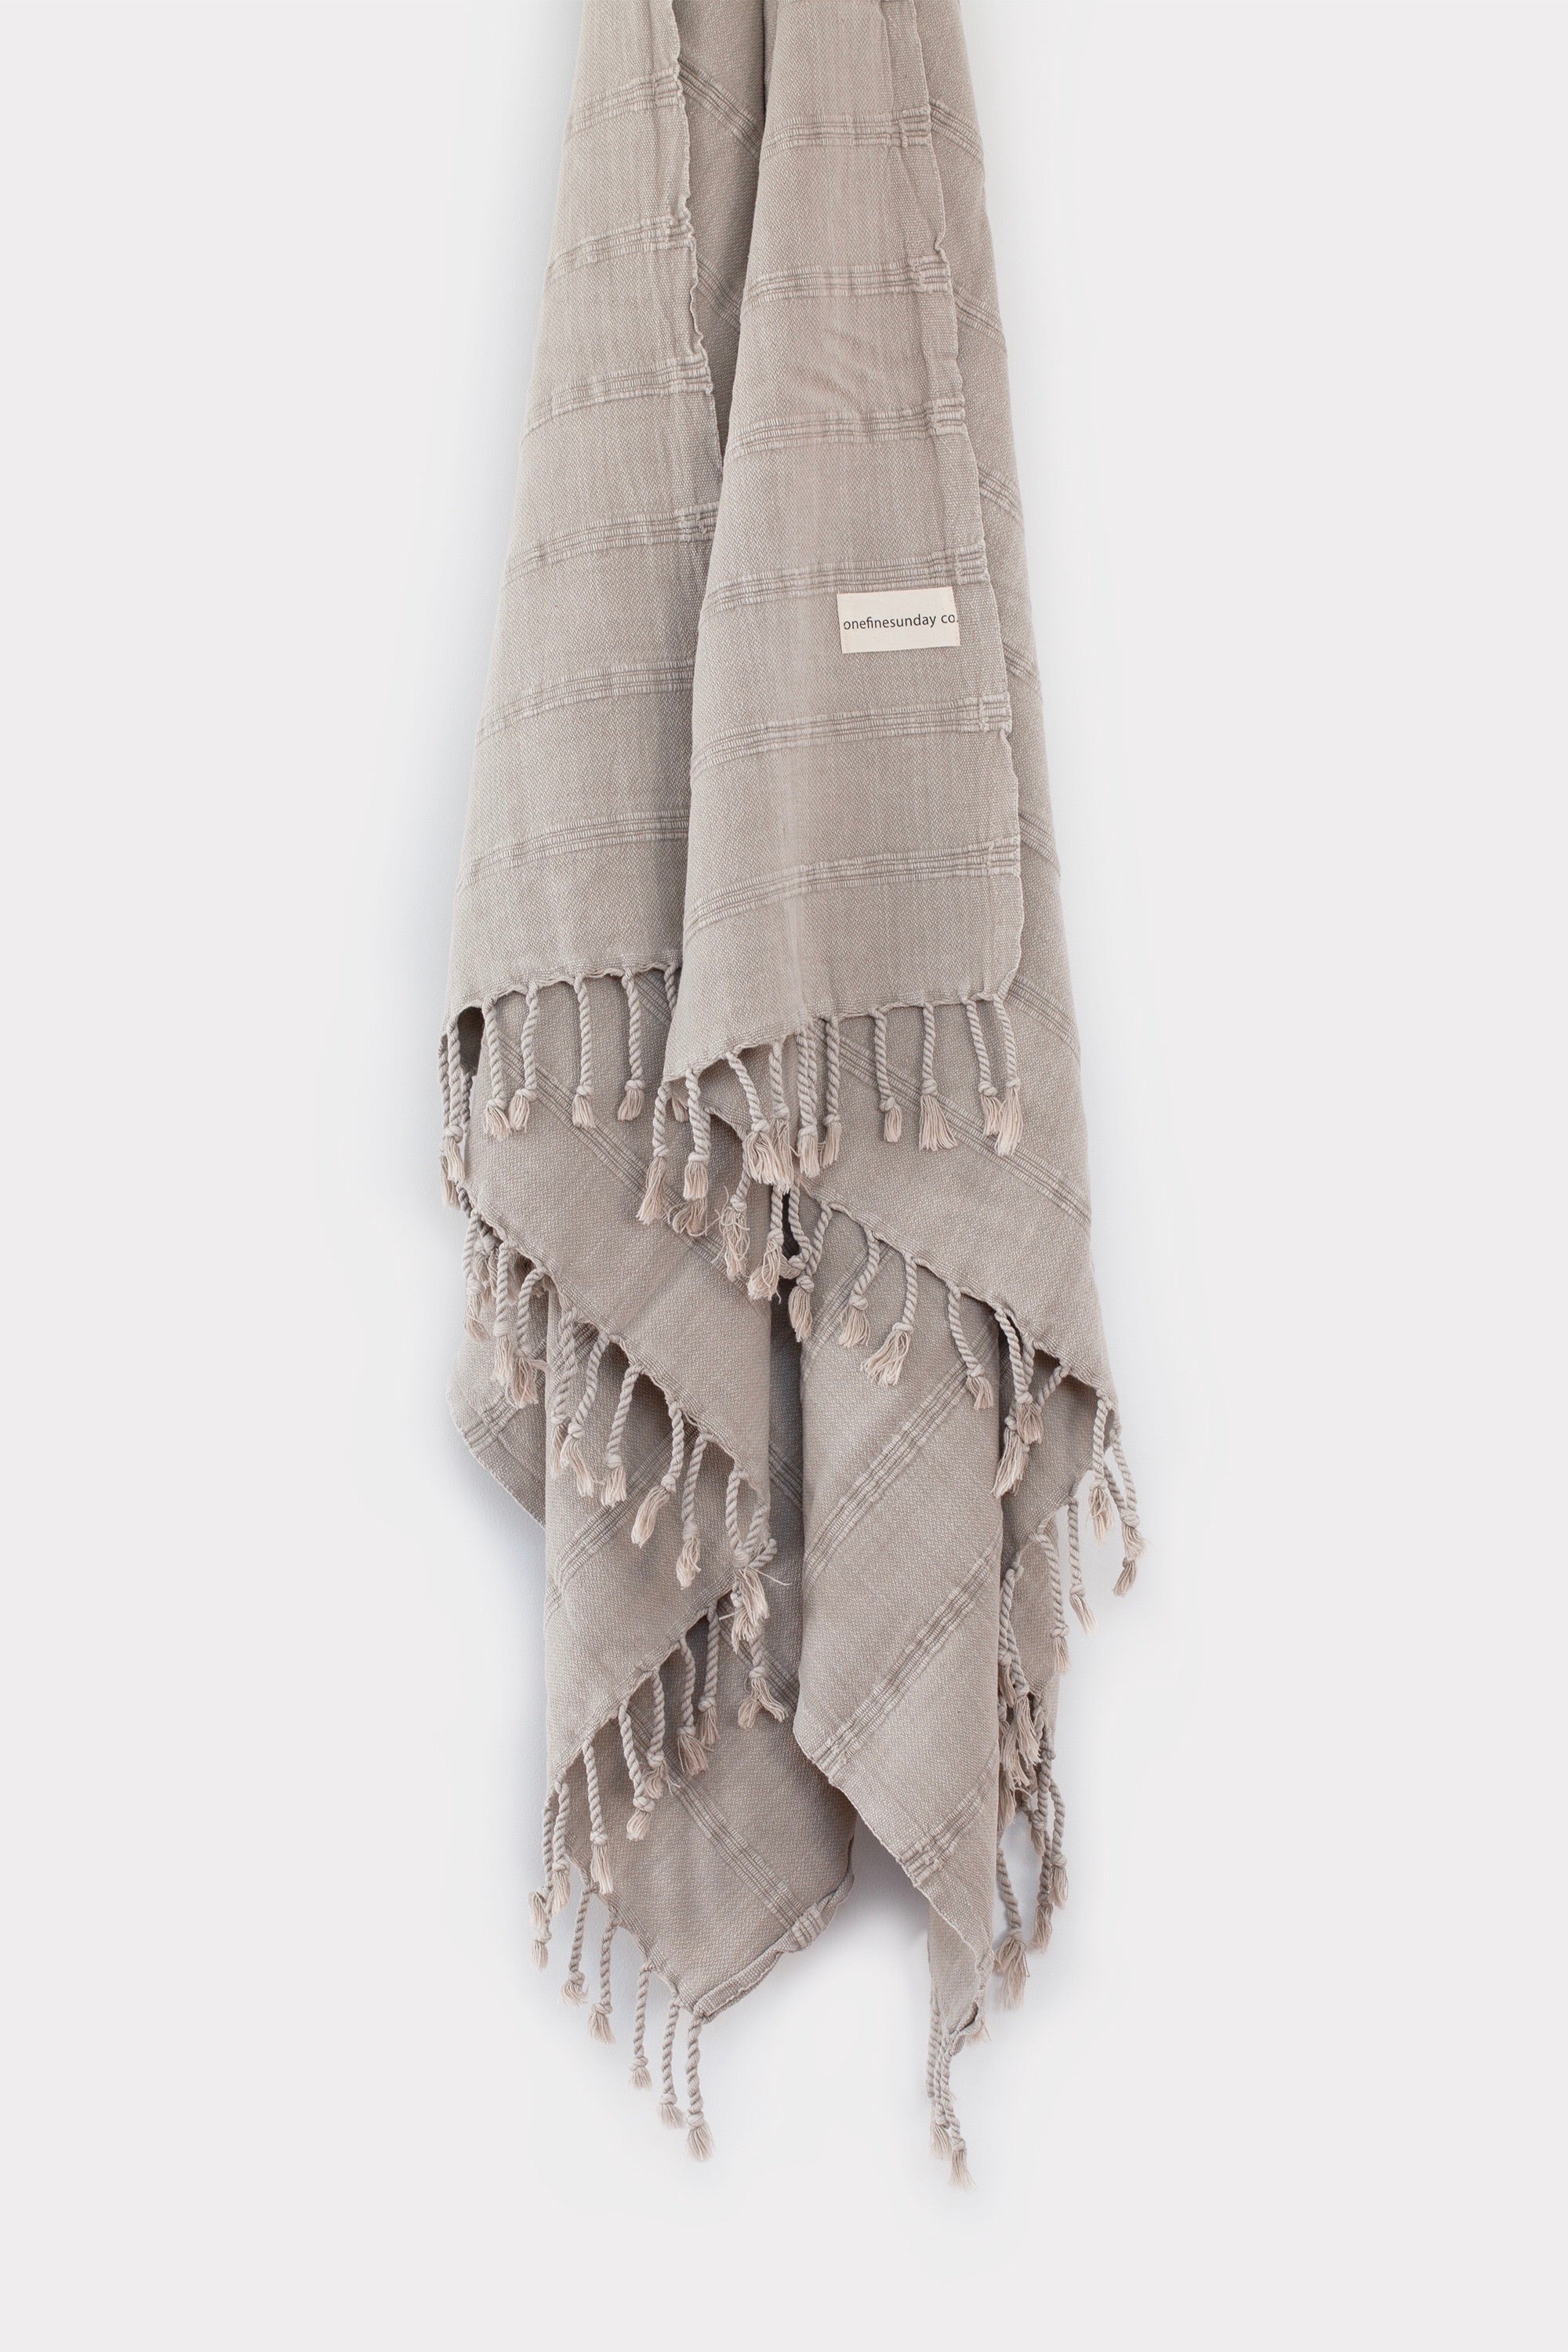 Stonewashed bamboo blend Beach & Bed Throw - Desert Sand-onefinesunday co